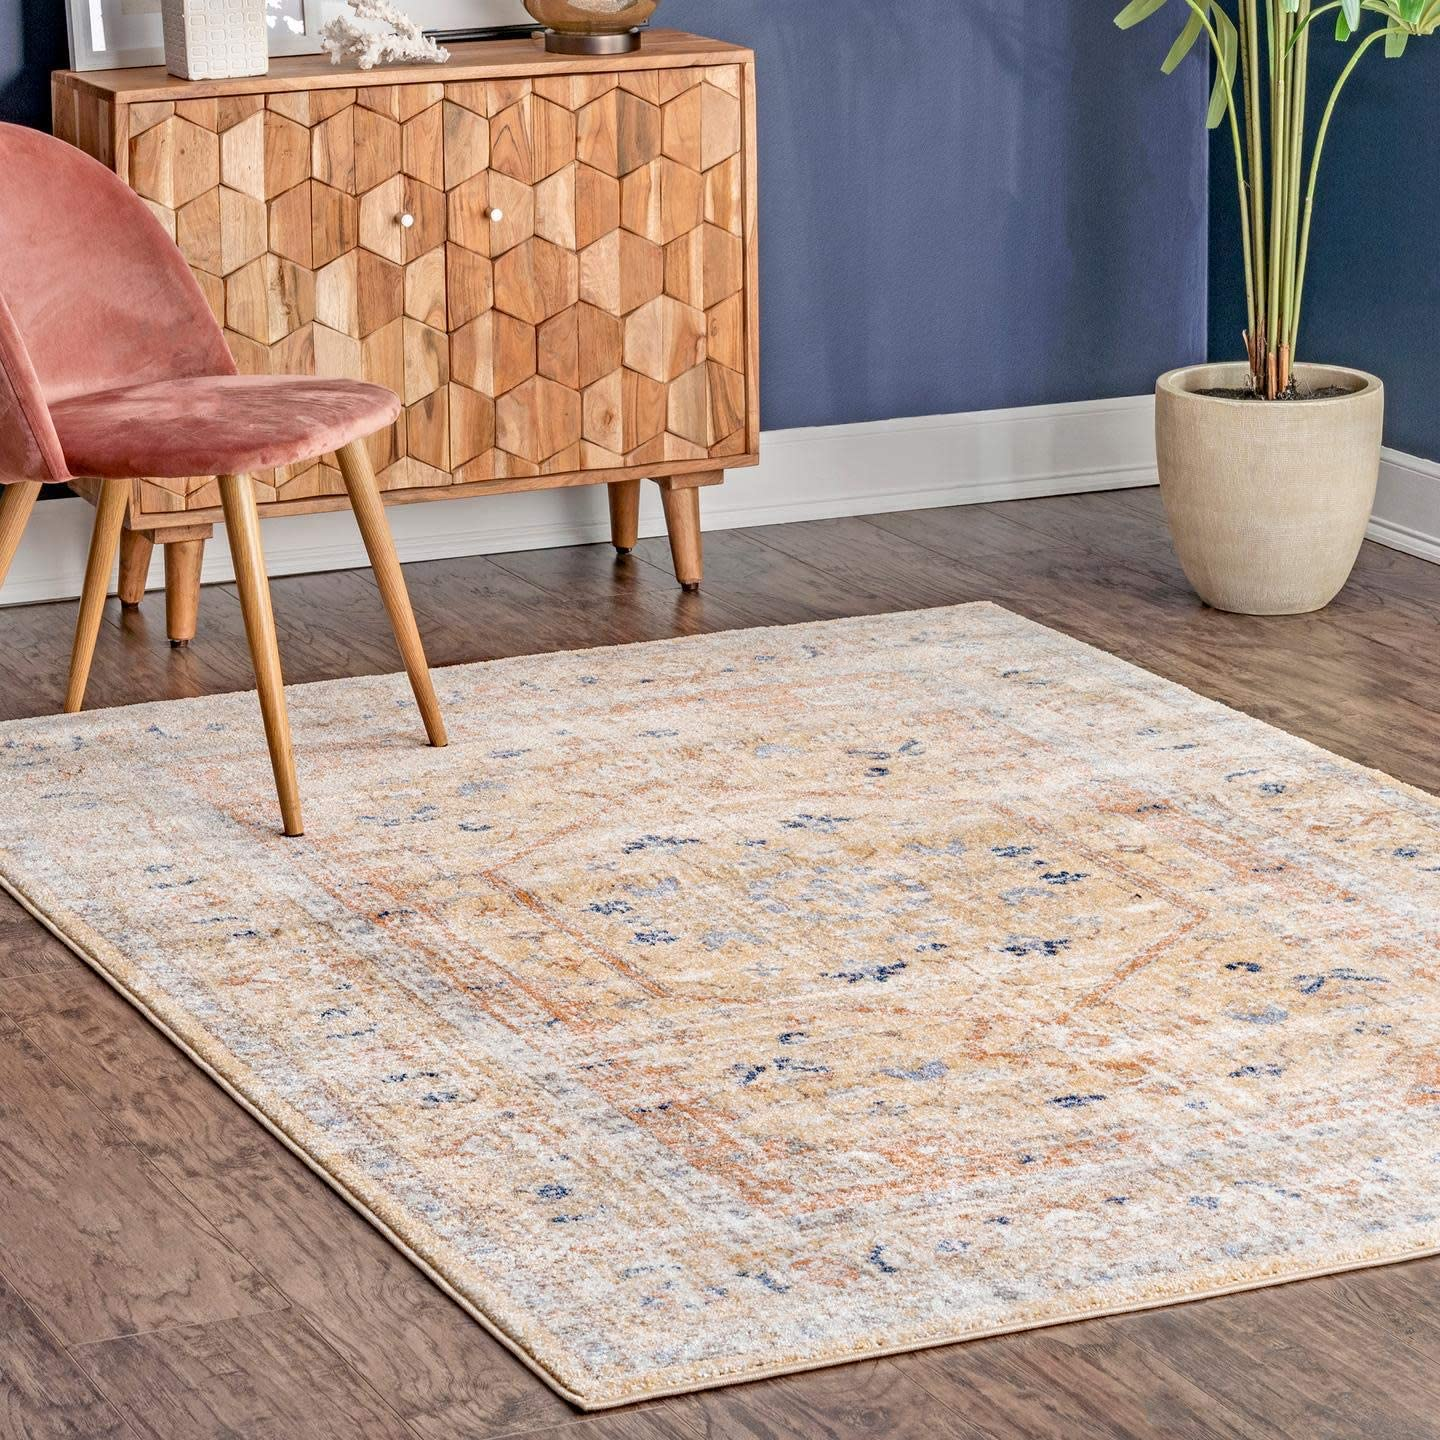 Shop nuLOOM Vintage Jacquie Floral Area Rug, 8' x 10', Gold from Amazon on Openhaus